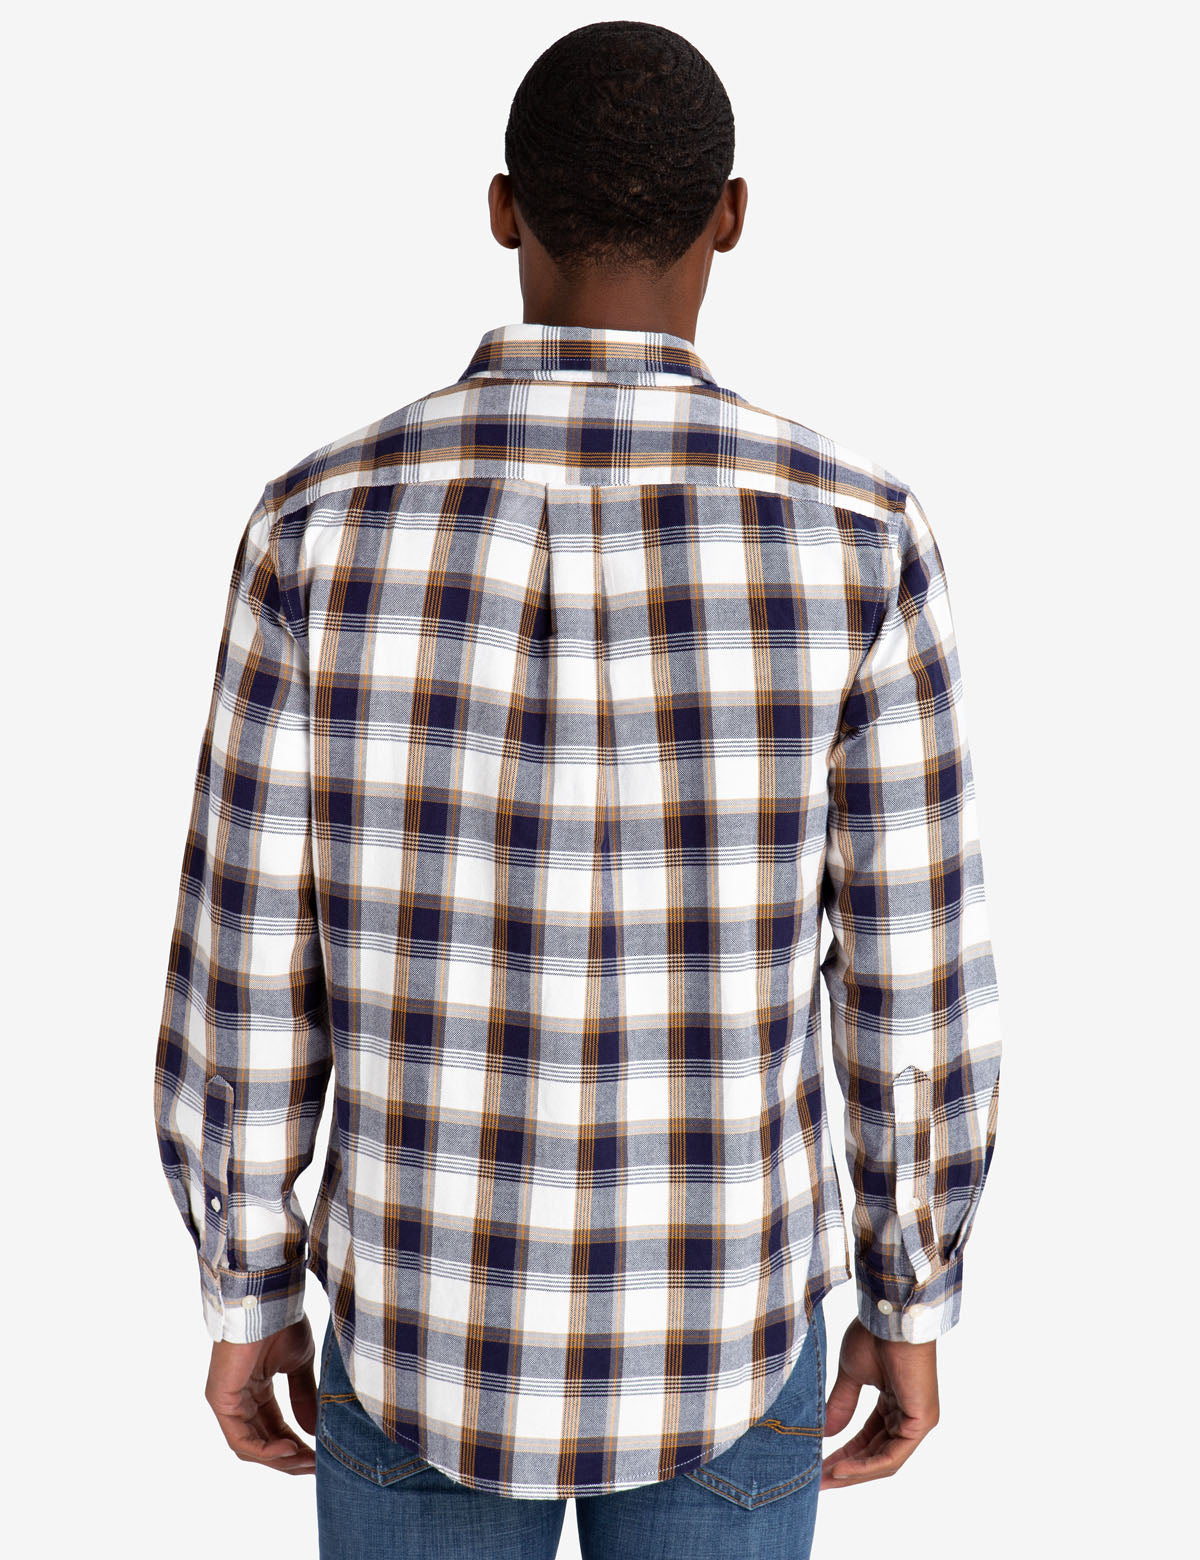 BLACK MALLET CLASSIC FIT HEATHER PLAID OXFORD SHIRT - U.S. Polo Assn.